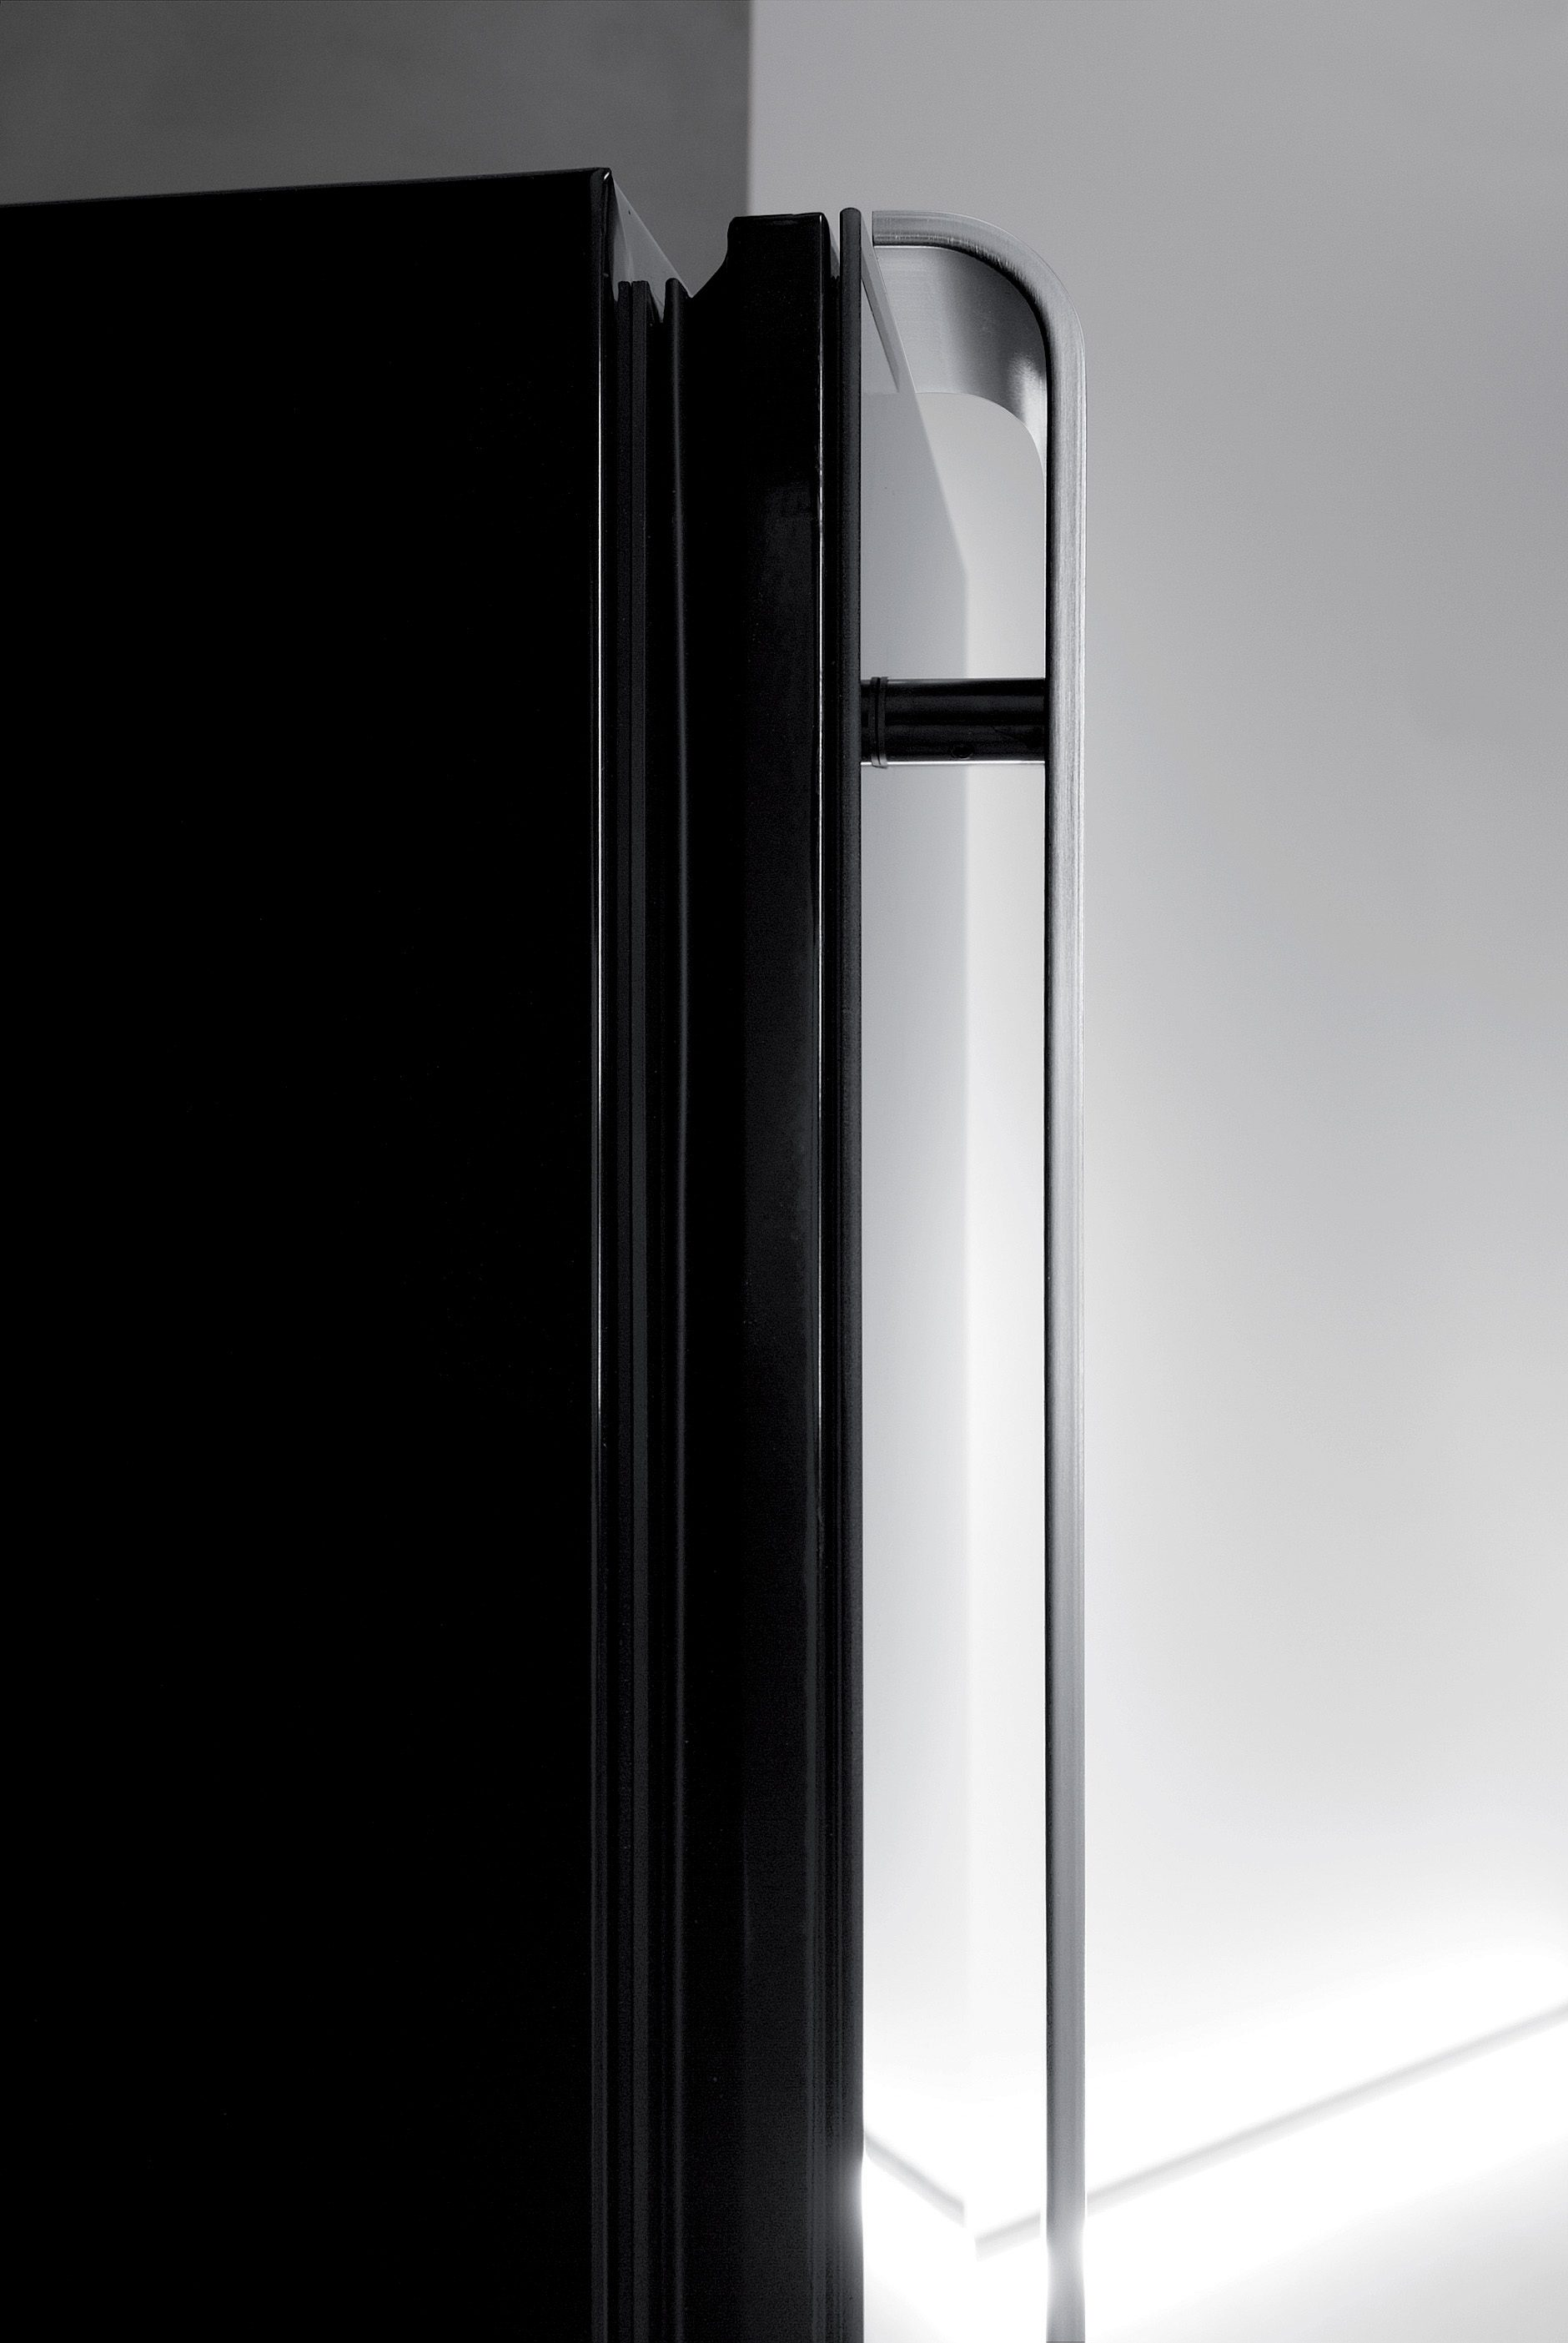 Gorenje Ora 239 To Black Gorenje